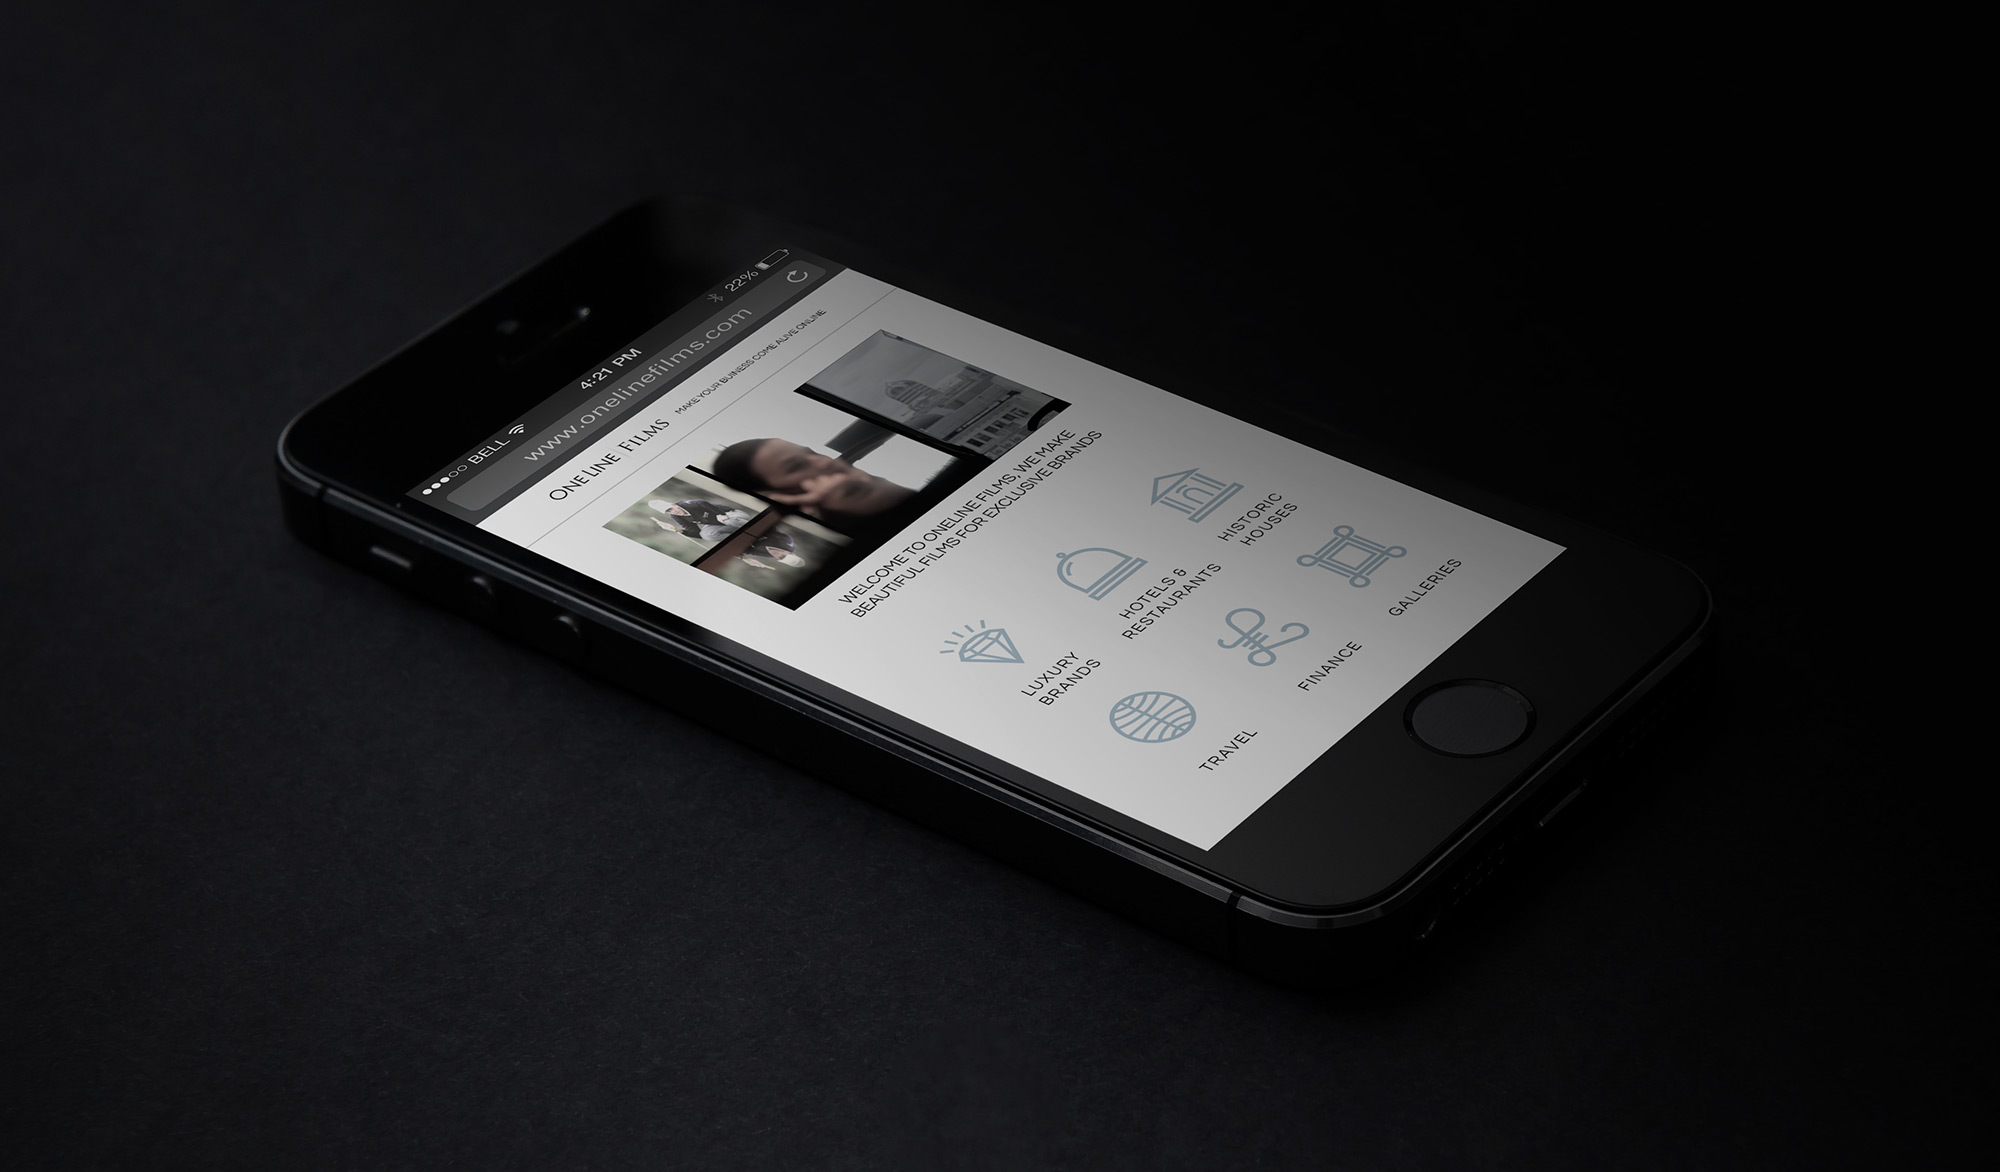 OneLine-web-iPhone